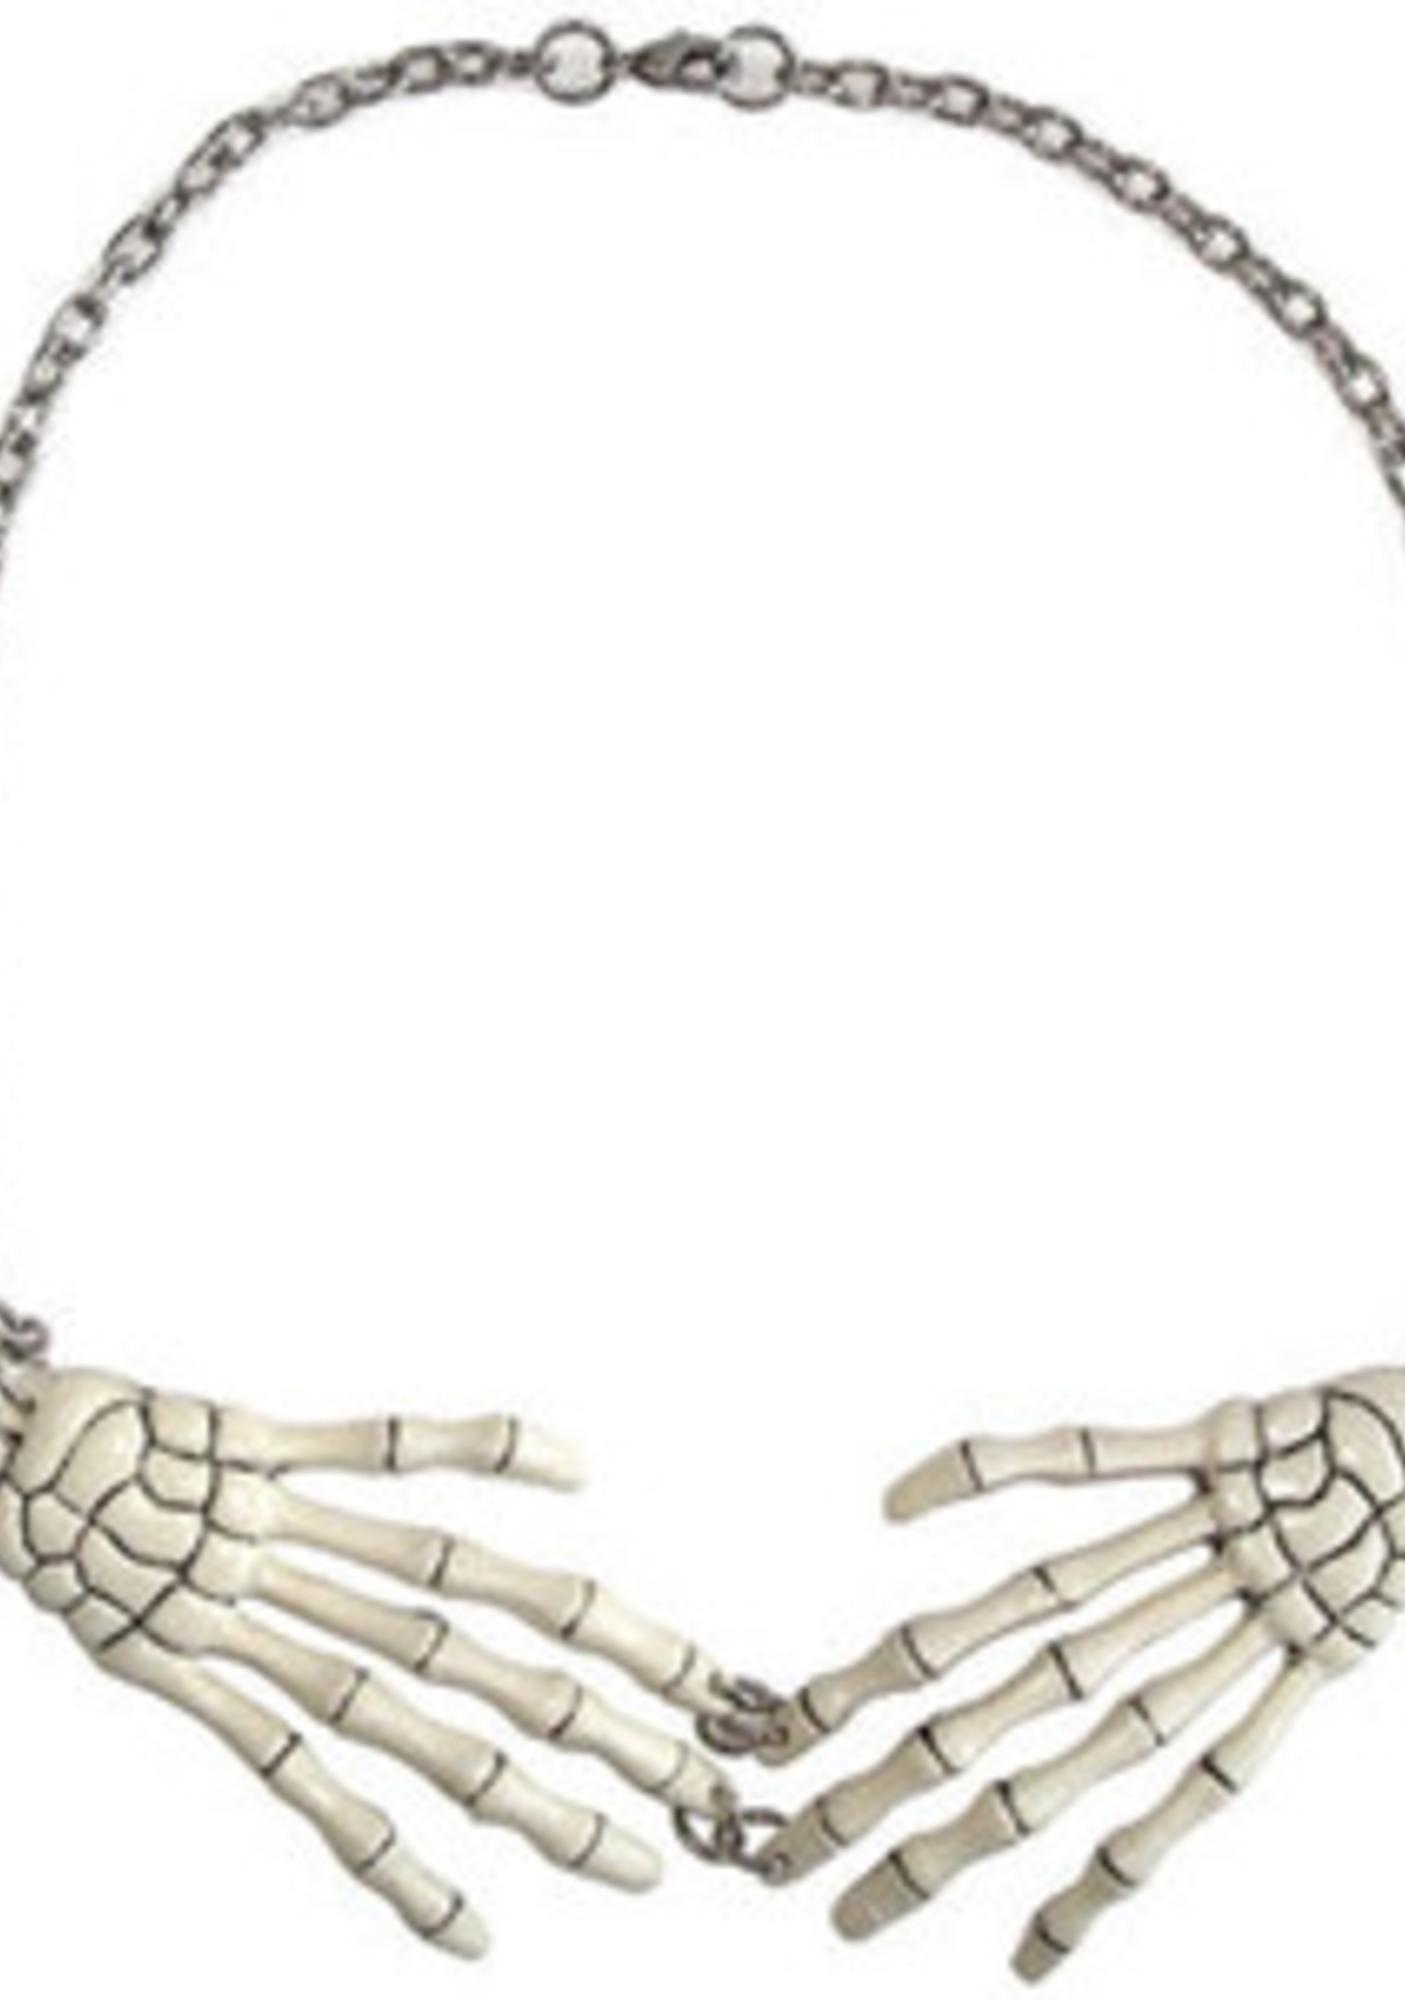 Kreepsville 666 Skeleton Bone Hand Necklace